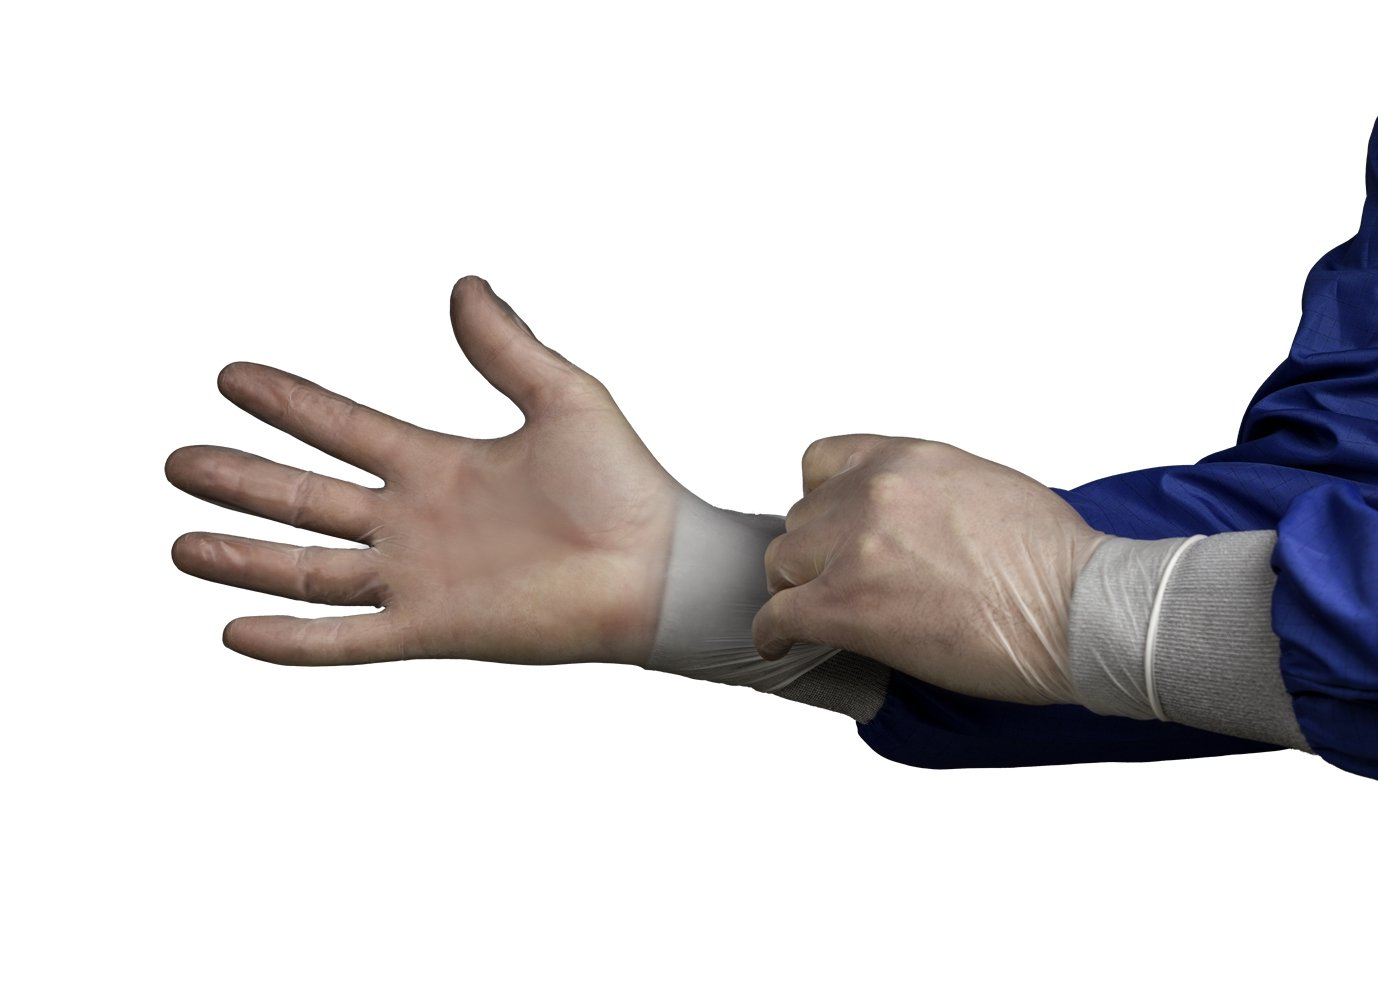 HandPRO 552 Hourglass 550 Series Natural Vinyl Controlled Environment Glove, Clean Room, Beaded Cuff, Powder Free, 240 mm Length, 0.11 mm Thick, Medium, Clear (Pack of 1000)